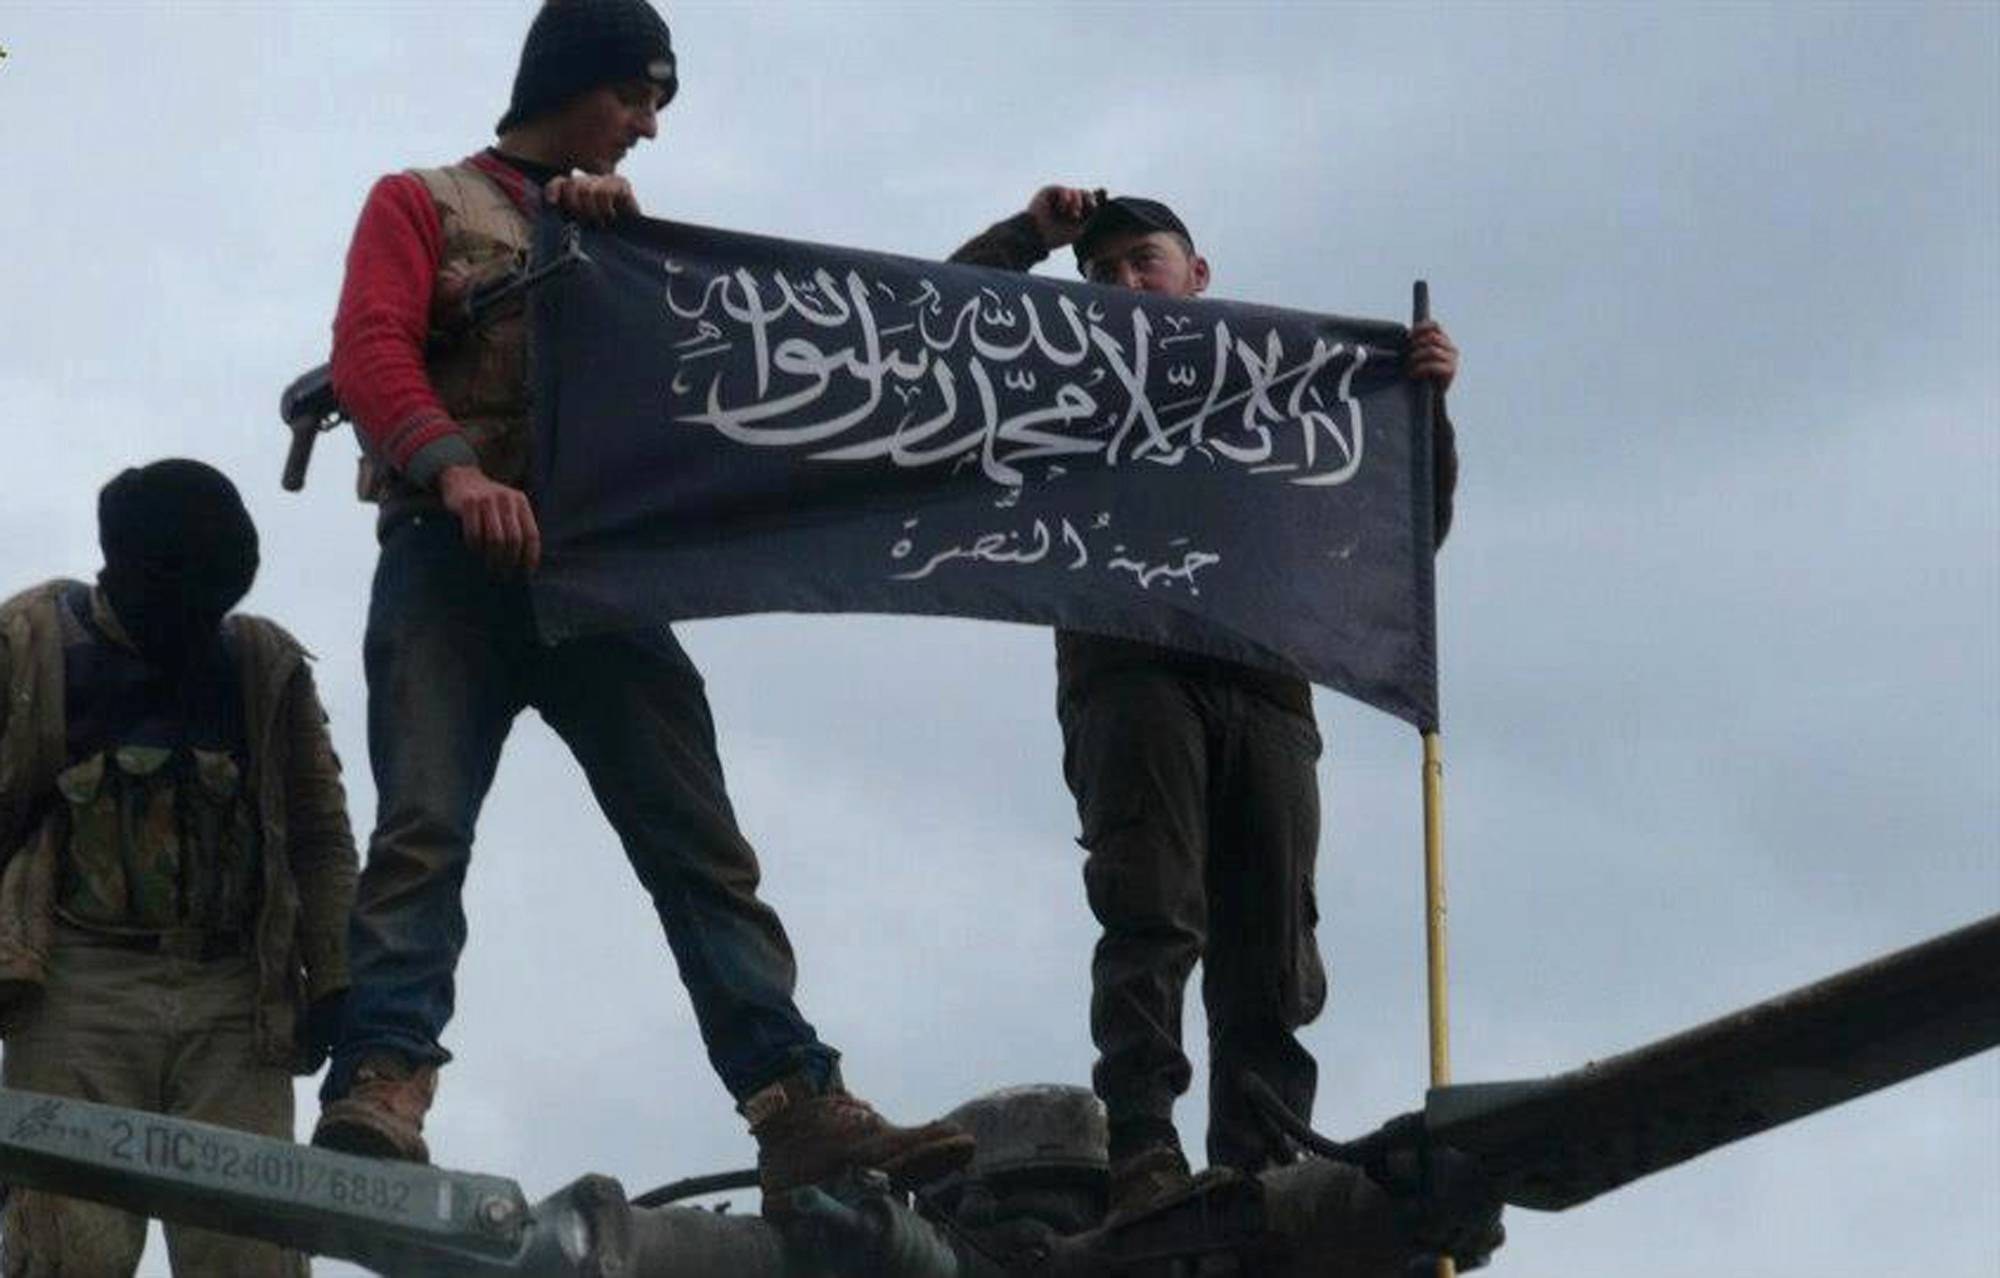 Rebels from al-Qaida affiliated Jabhat al-Nusra, also known as the Nusra Front, wave its brigade flag as they step on the top of a Syrian air force helicopter at Taftanaz air base in Idlib province, northern Syria.